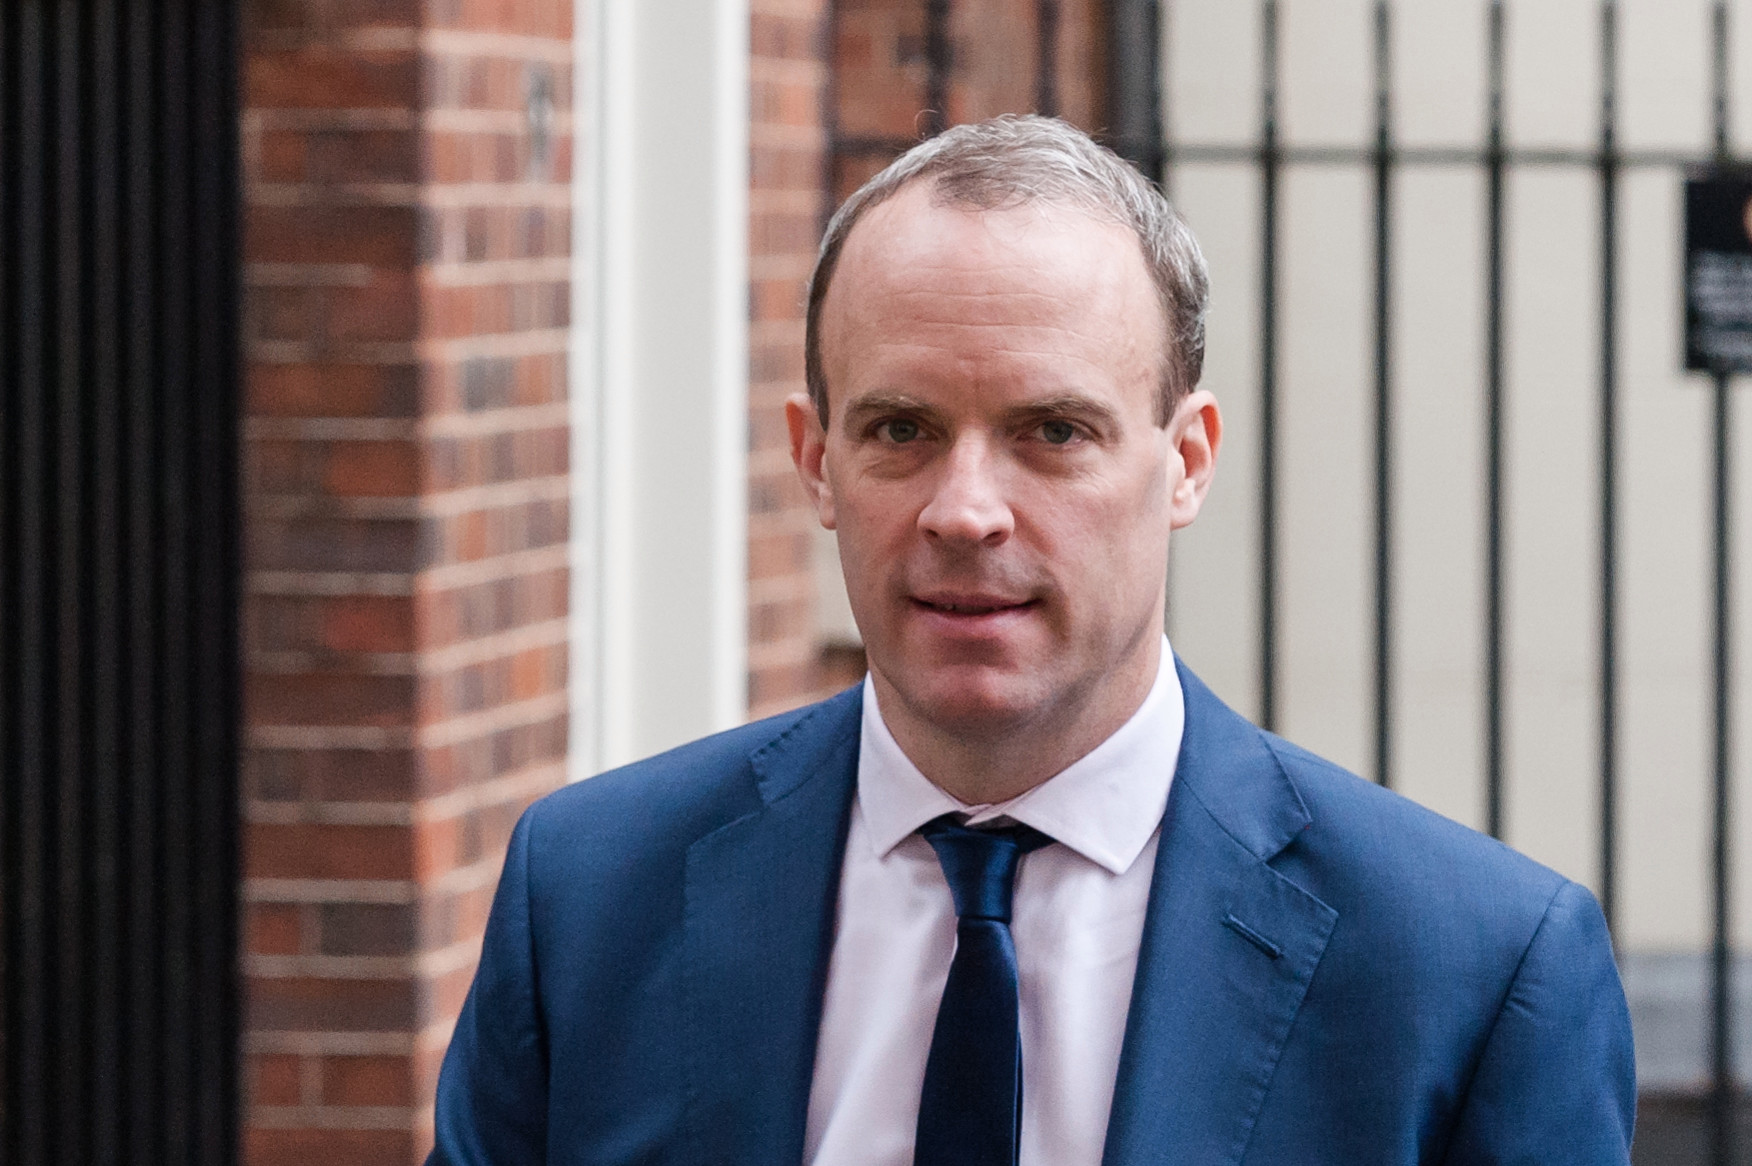 Raab has said that he is working with allies and airlines to get up to a million Brits home